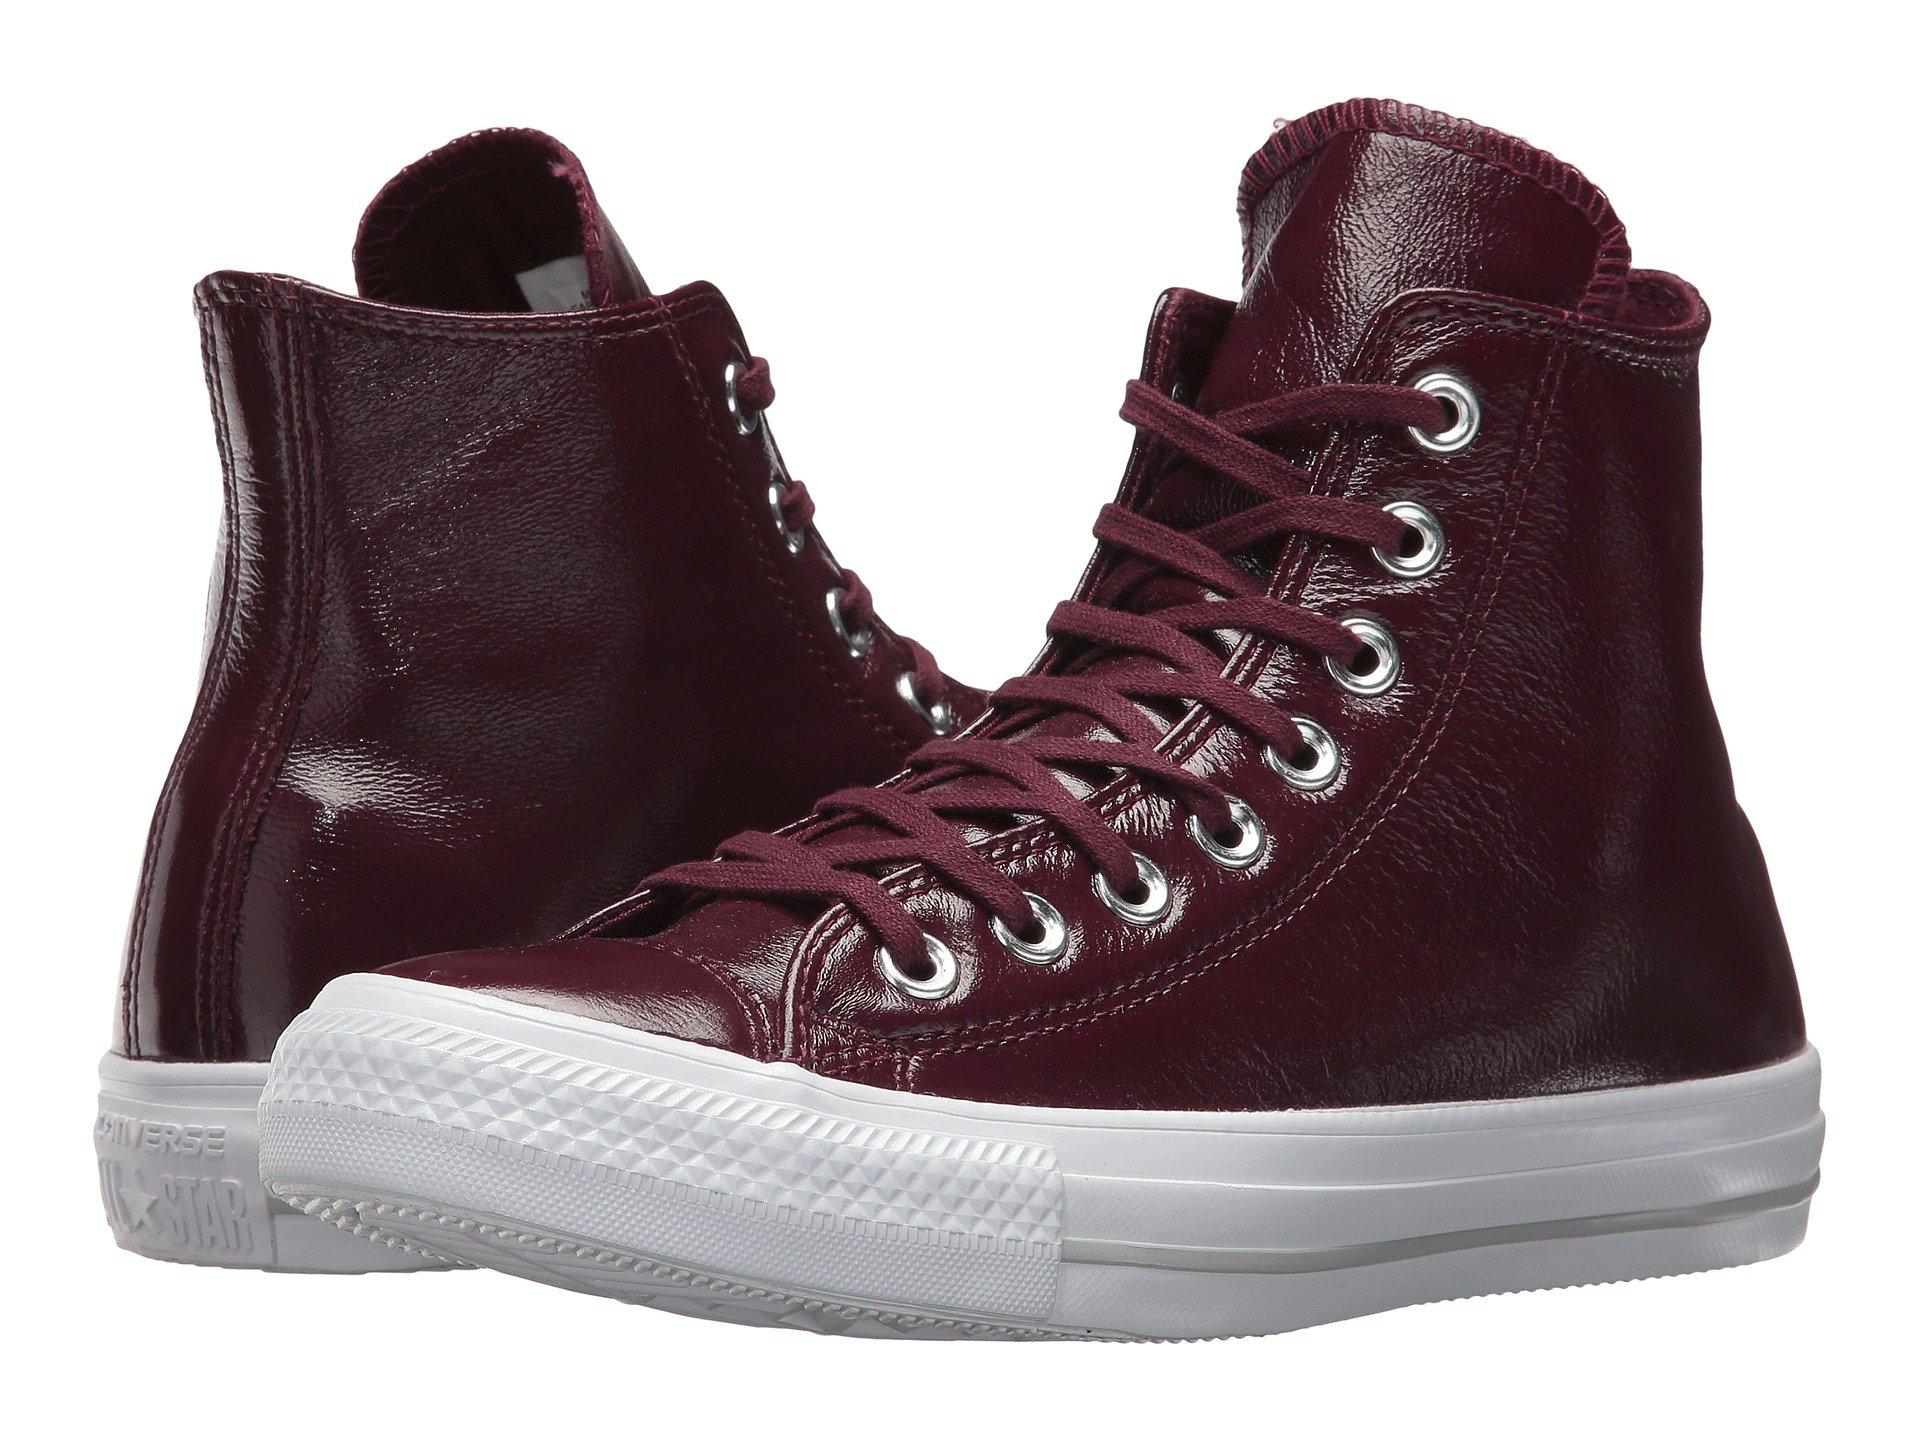 080b477c4b67 Converse Chuck Taylor® All Star® Crinkled Patent Leather Hi In Dark  Sangria Dark